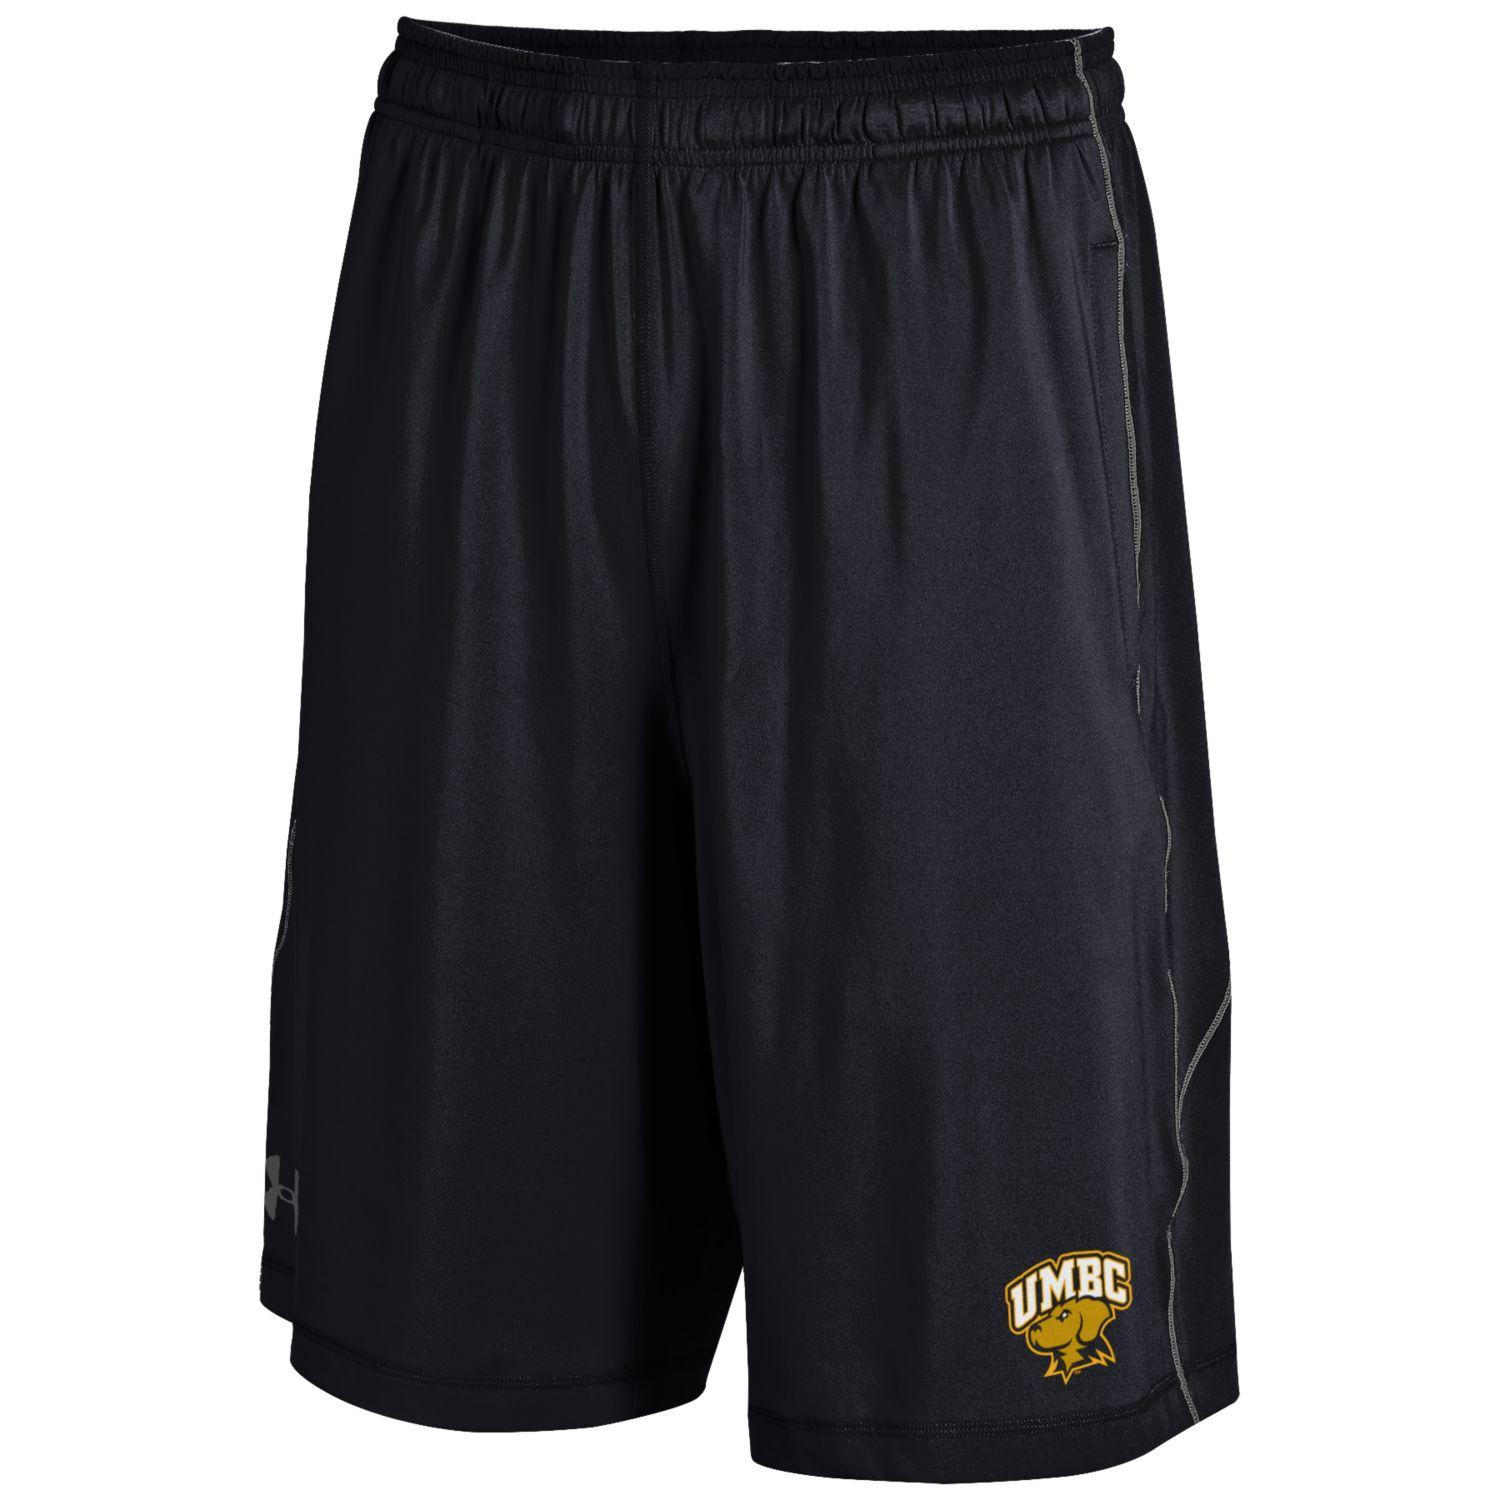 SHORTS: UNDER ARMOUR RAID SOLID 17